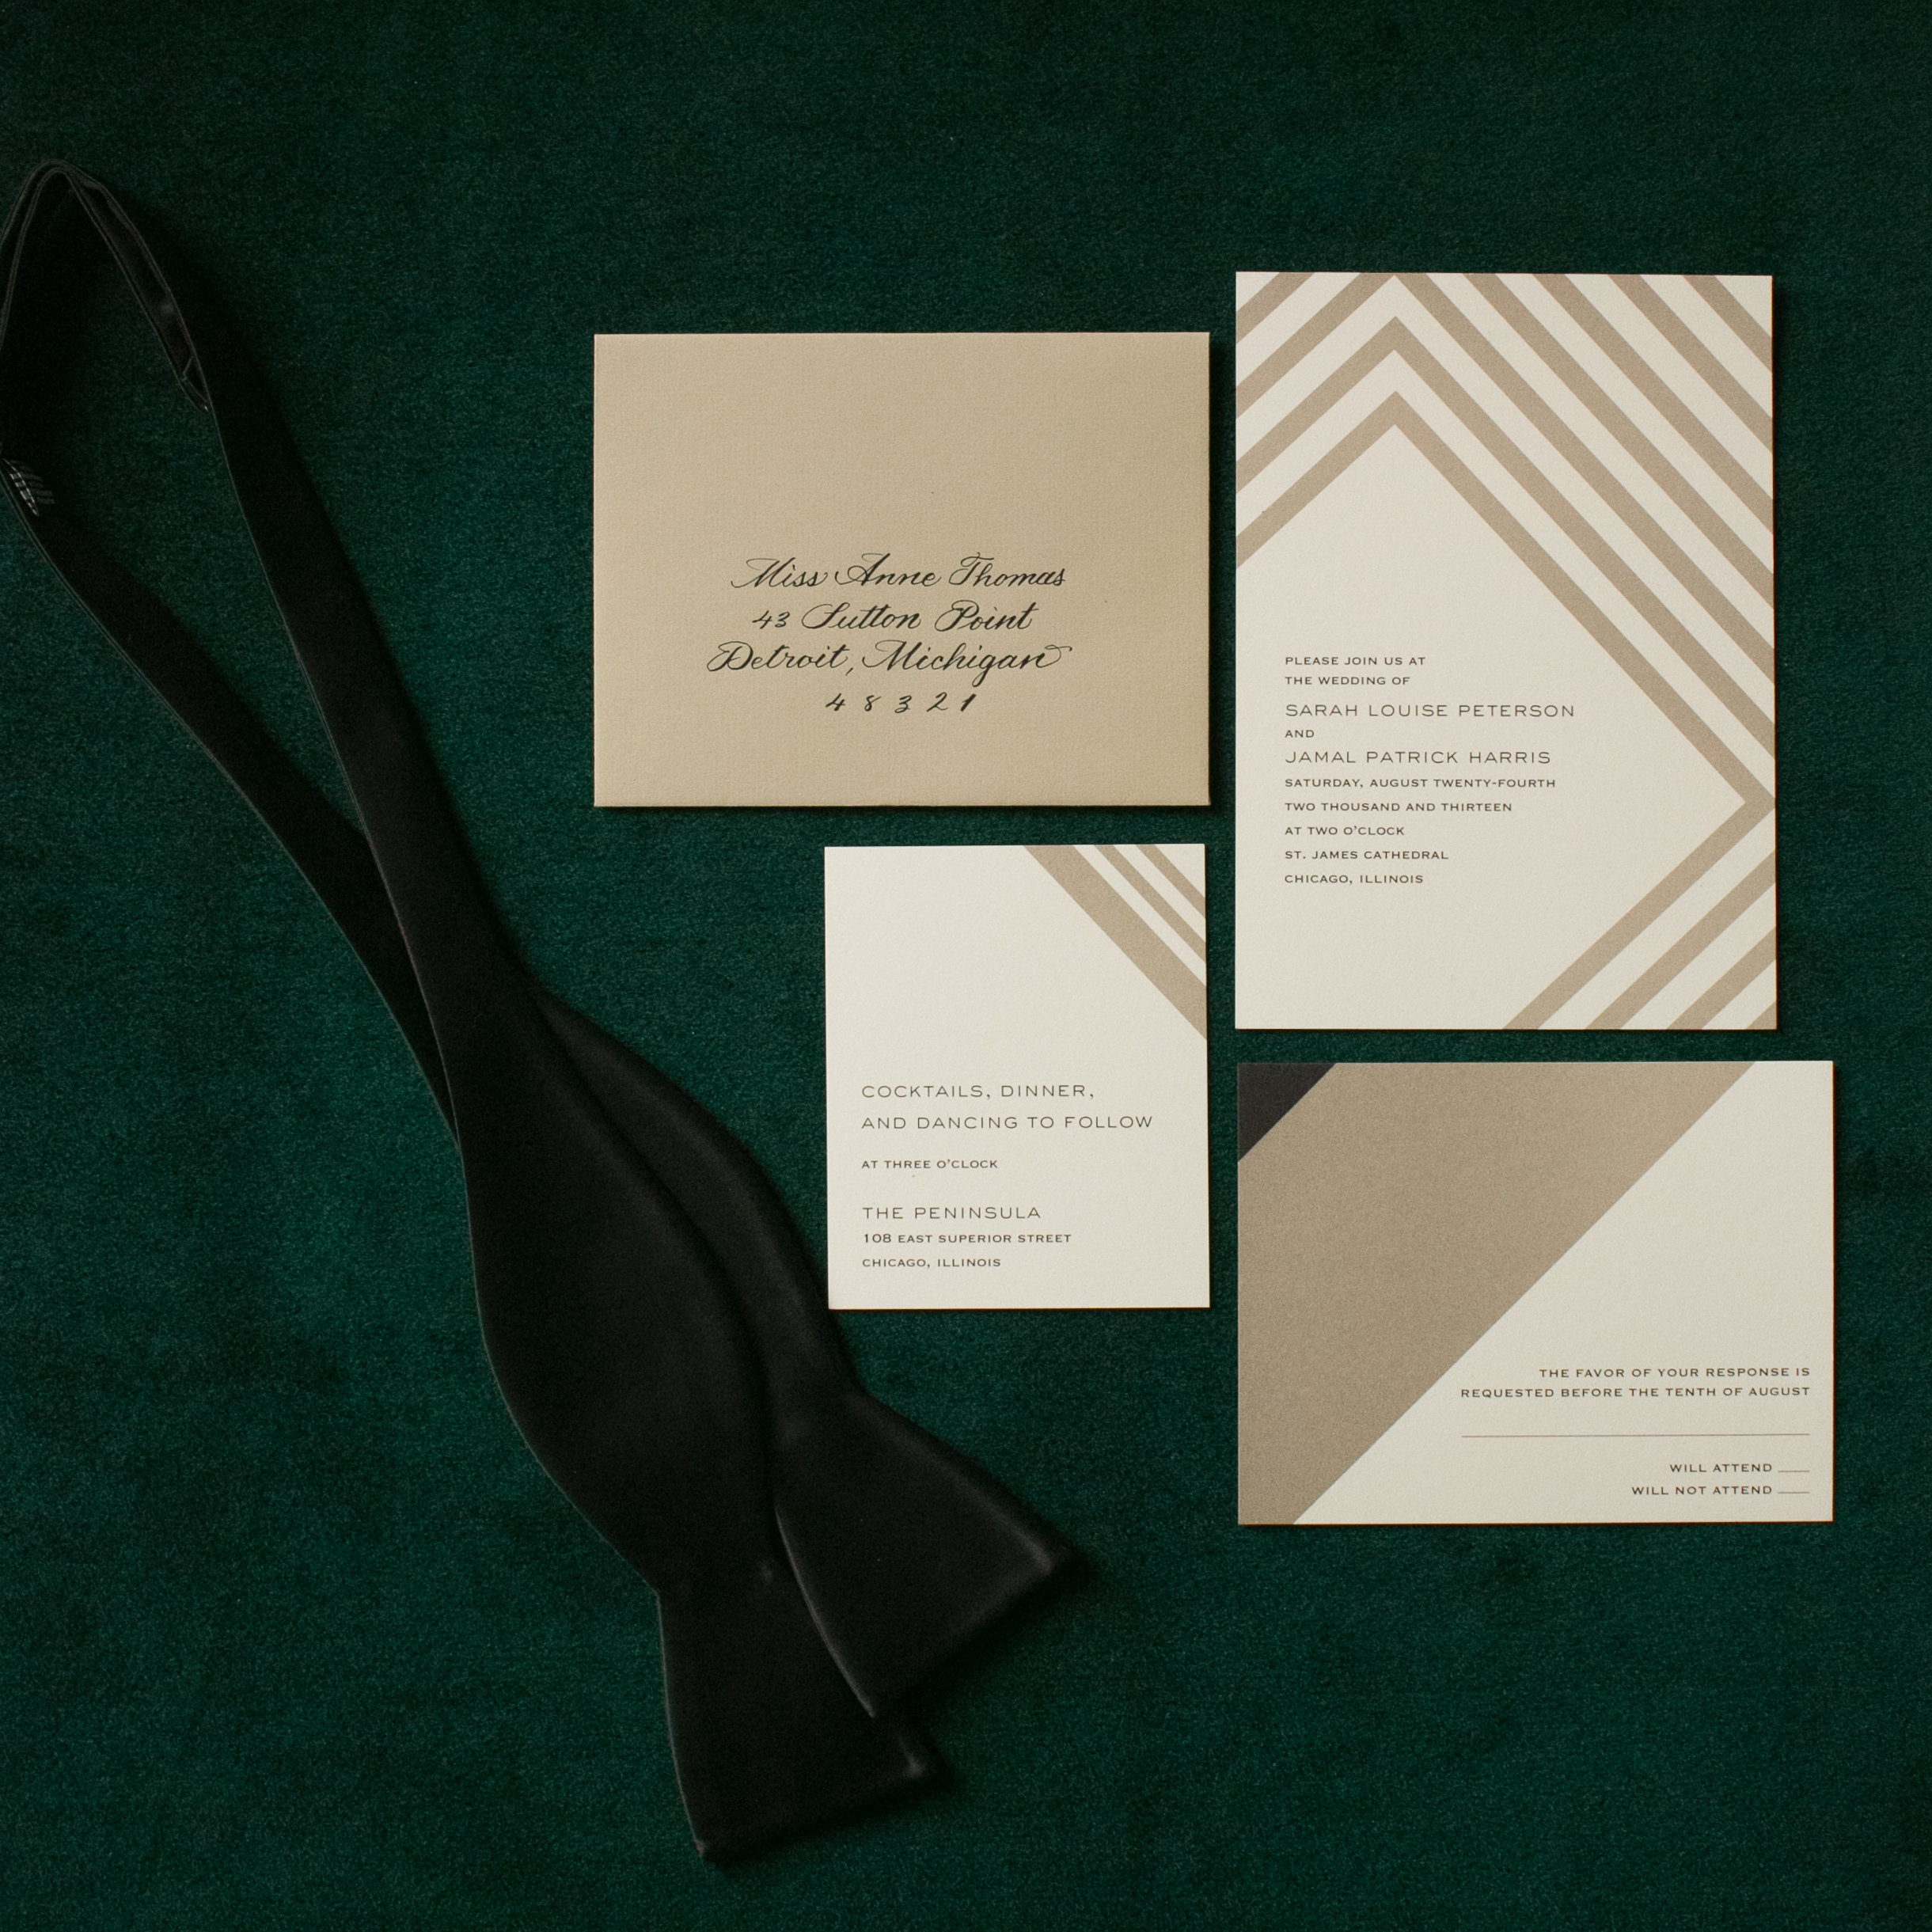 Clover Events | Emerald & Gold Wedding | Photos by Emilia Jane